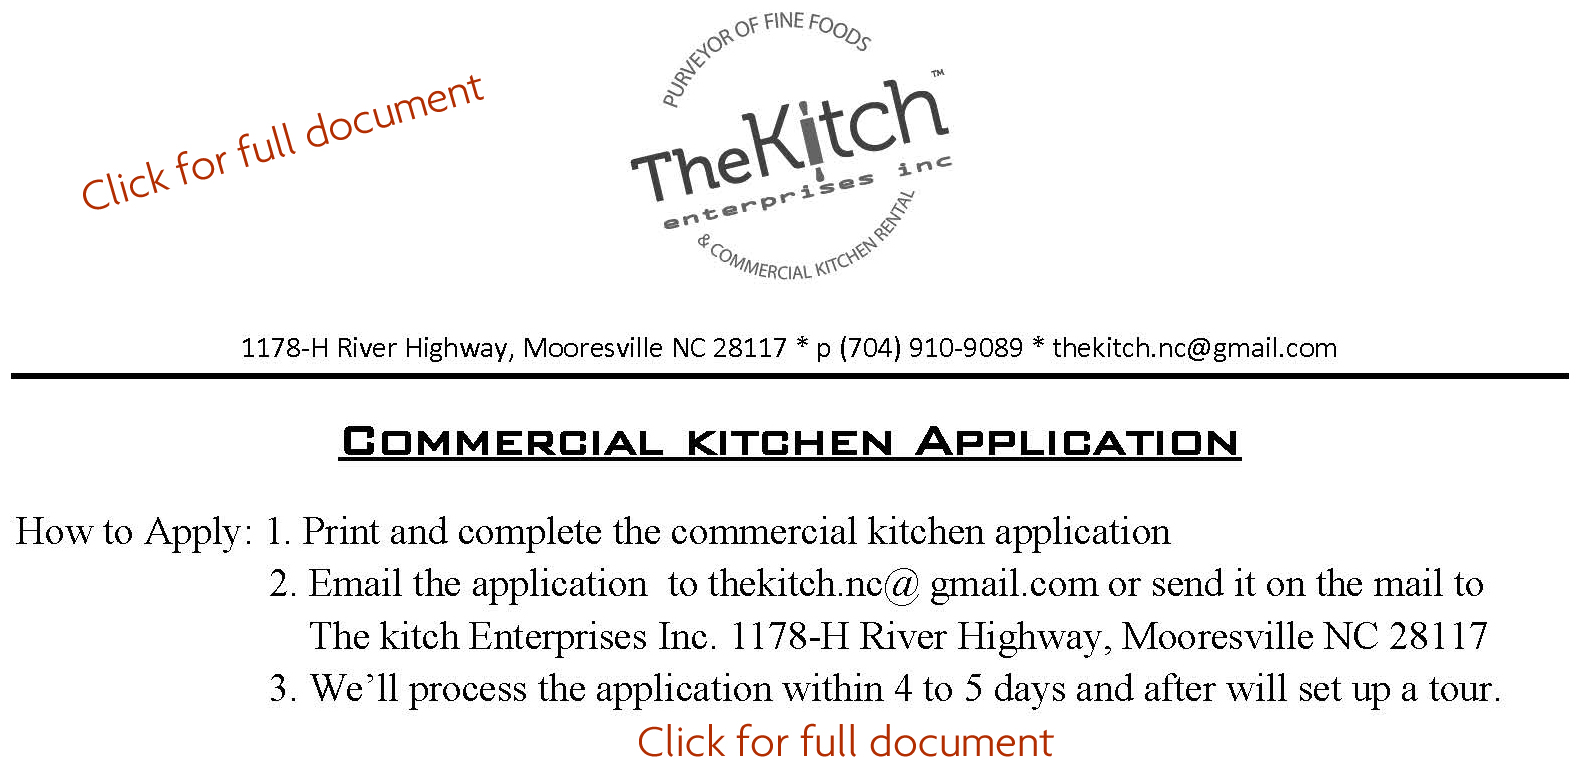 Application for commercial kitchen rental